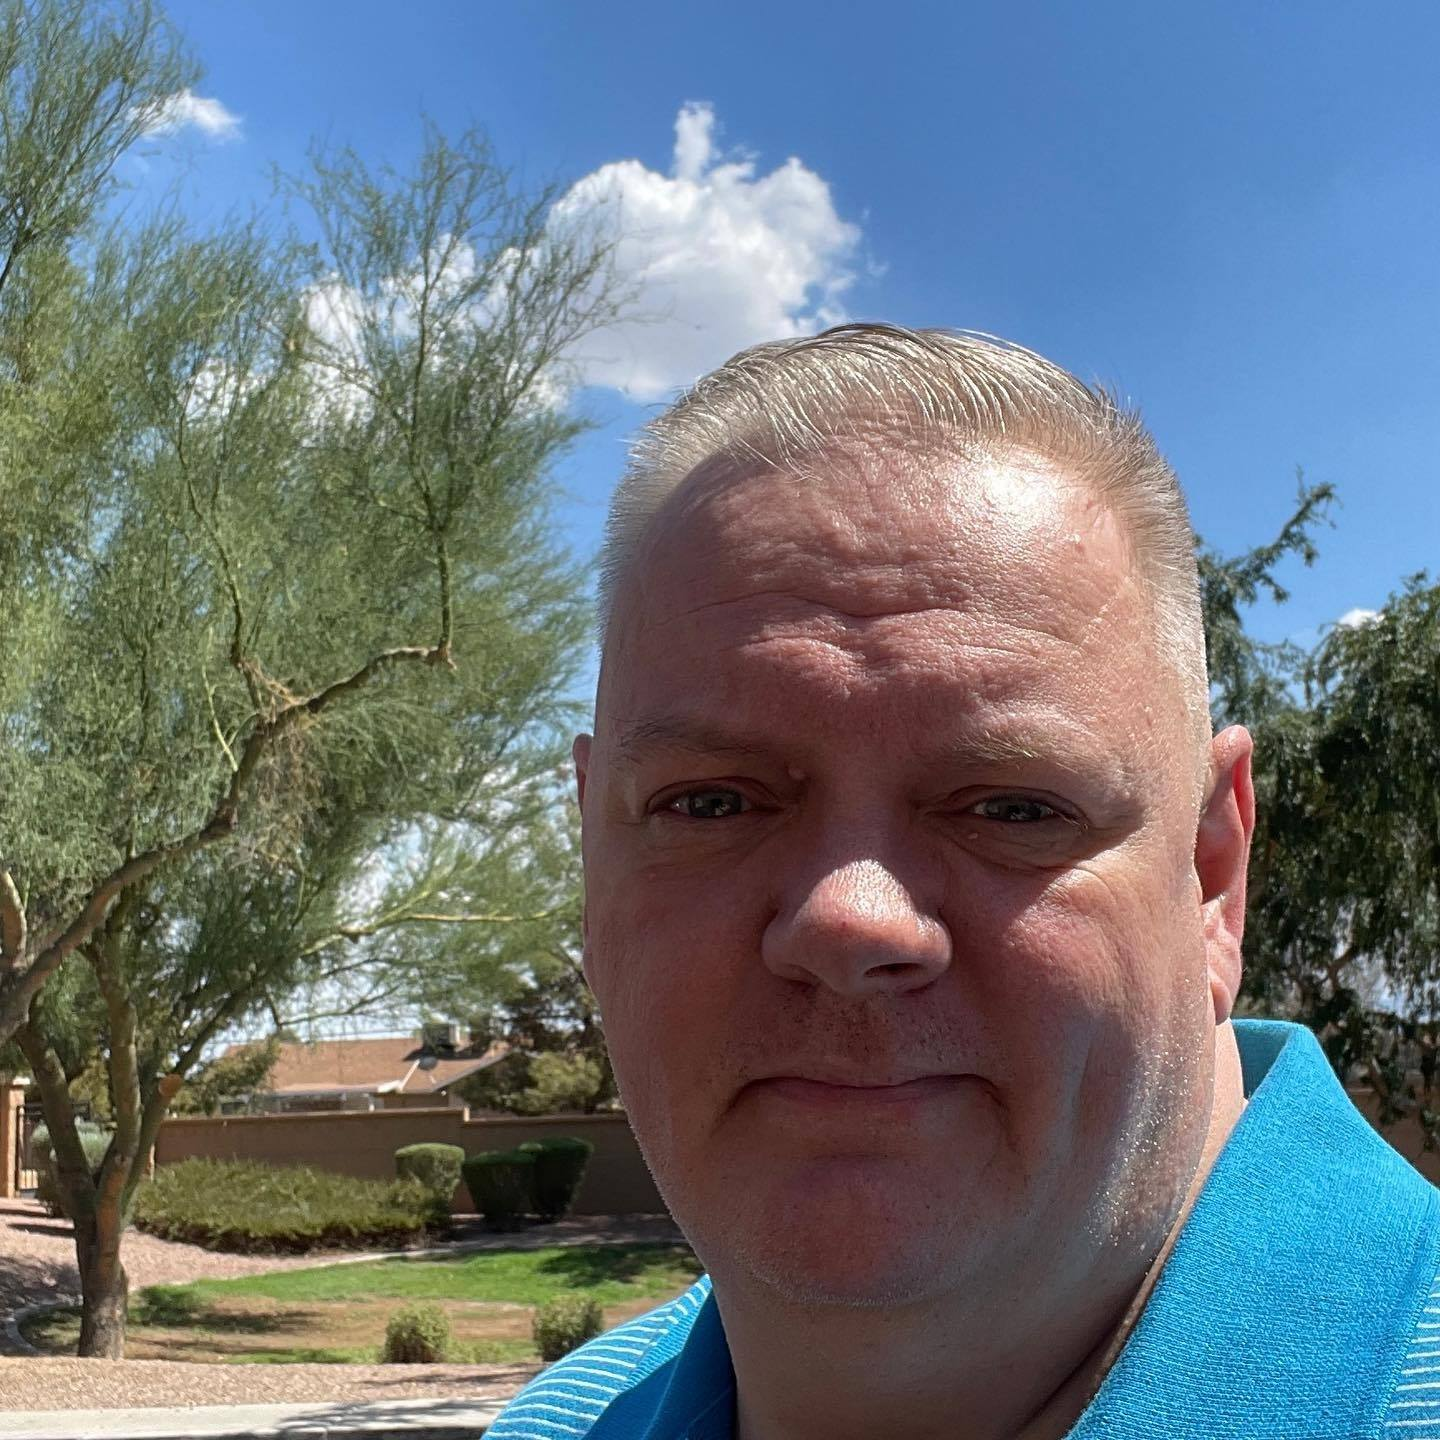 Todd standing outside in Arizona ona sunny day.